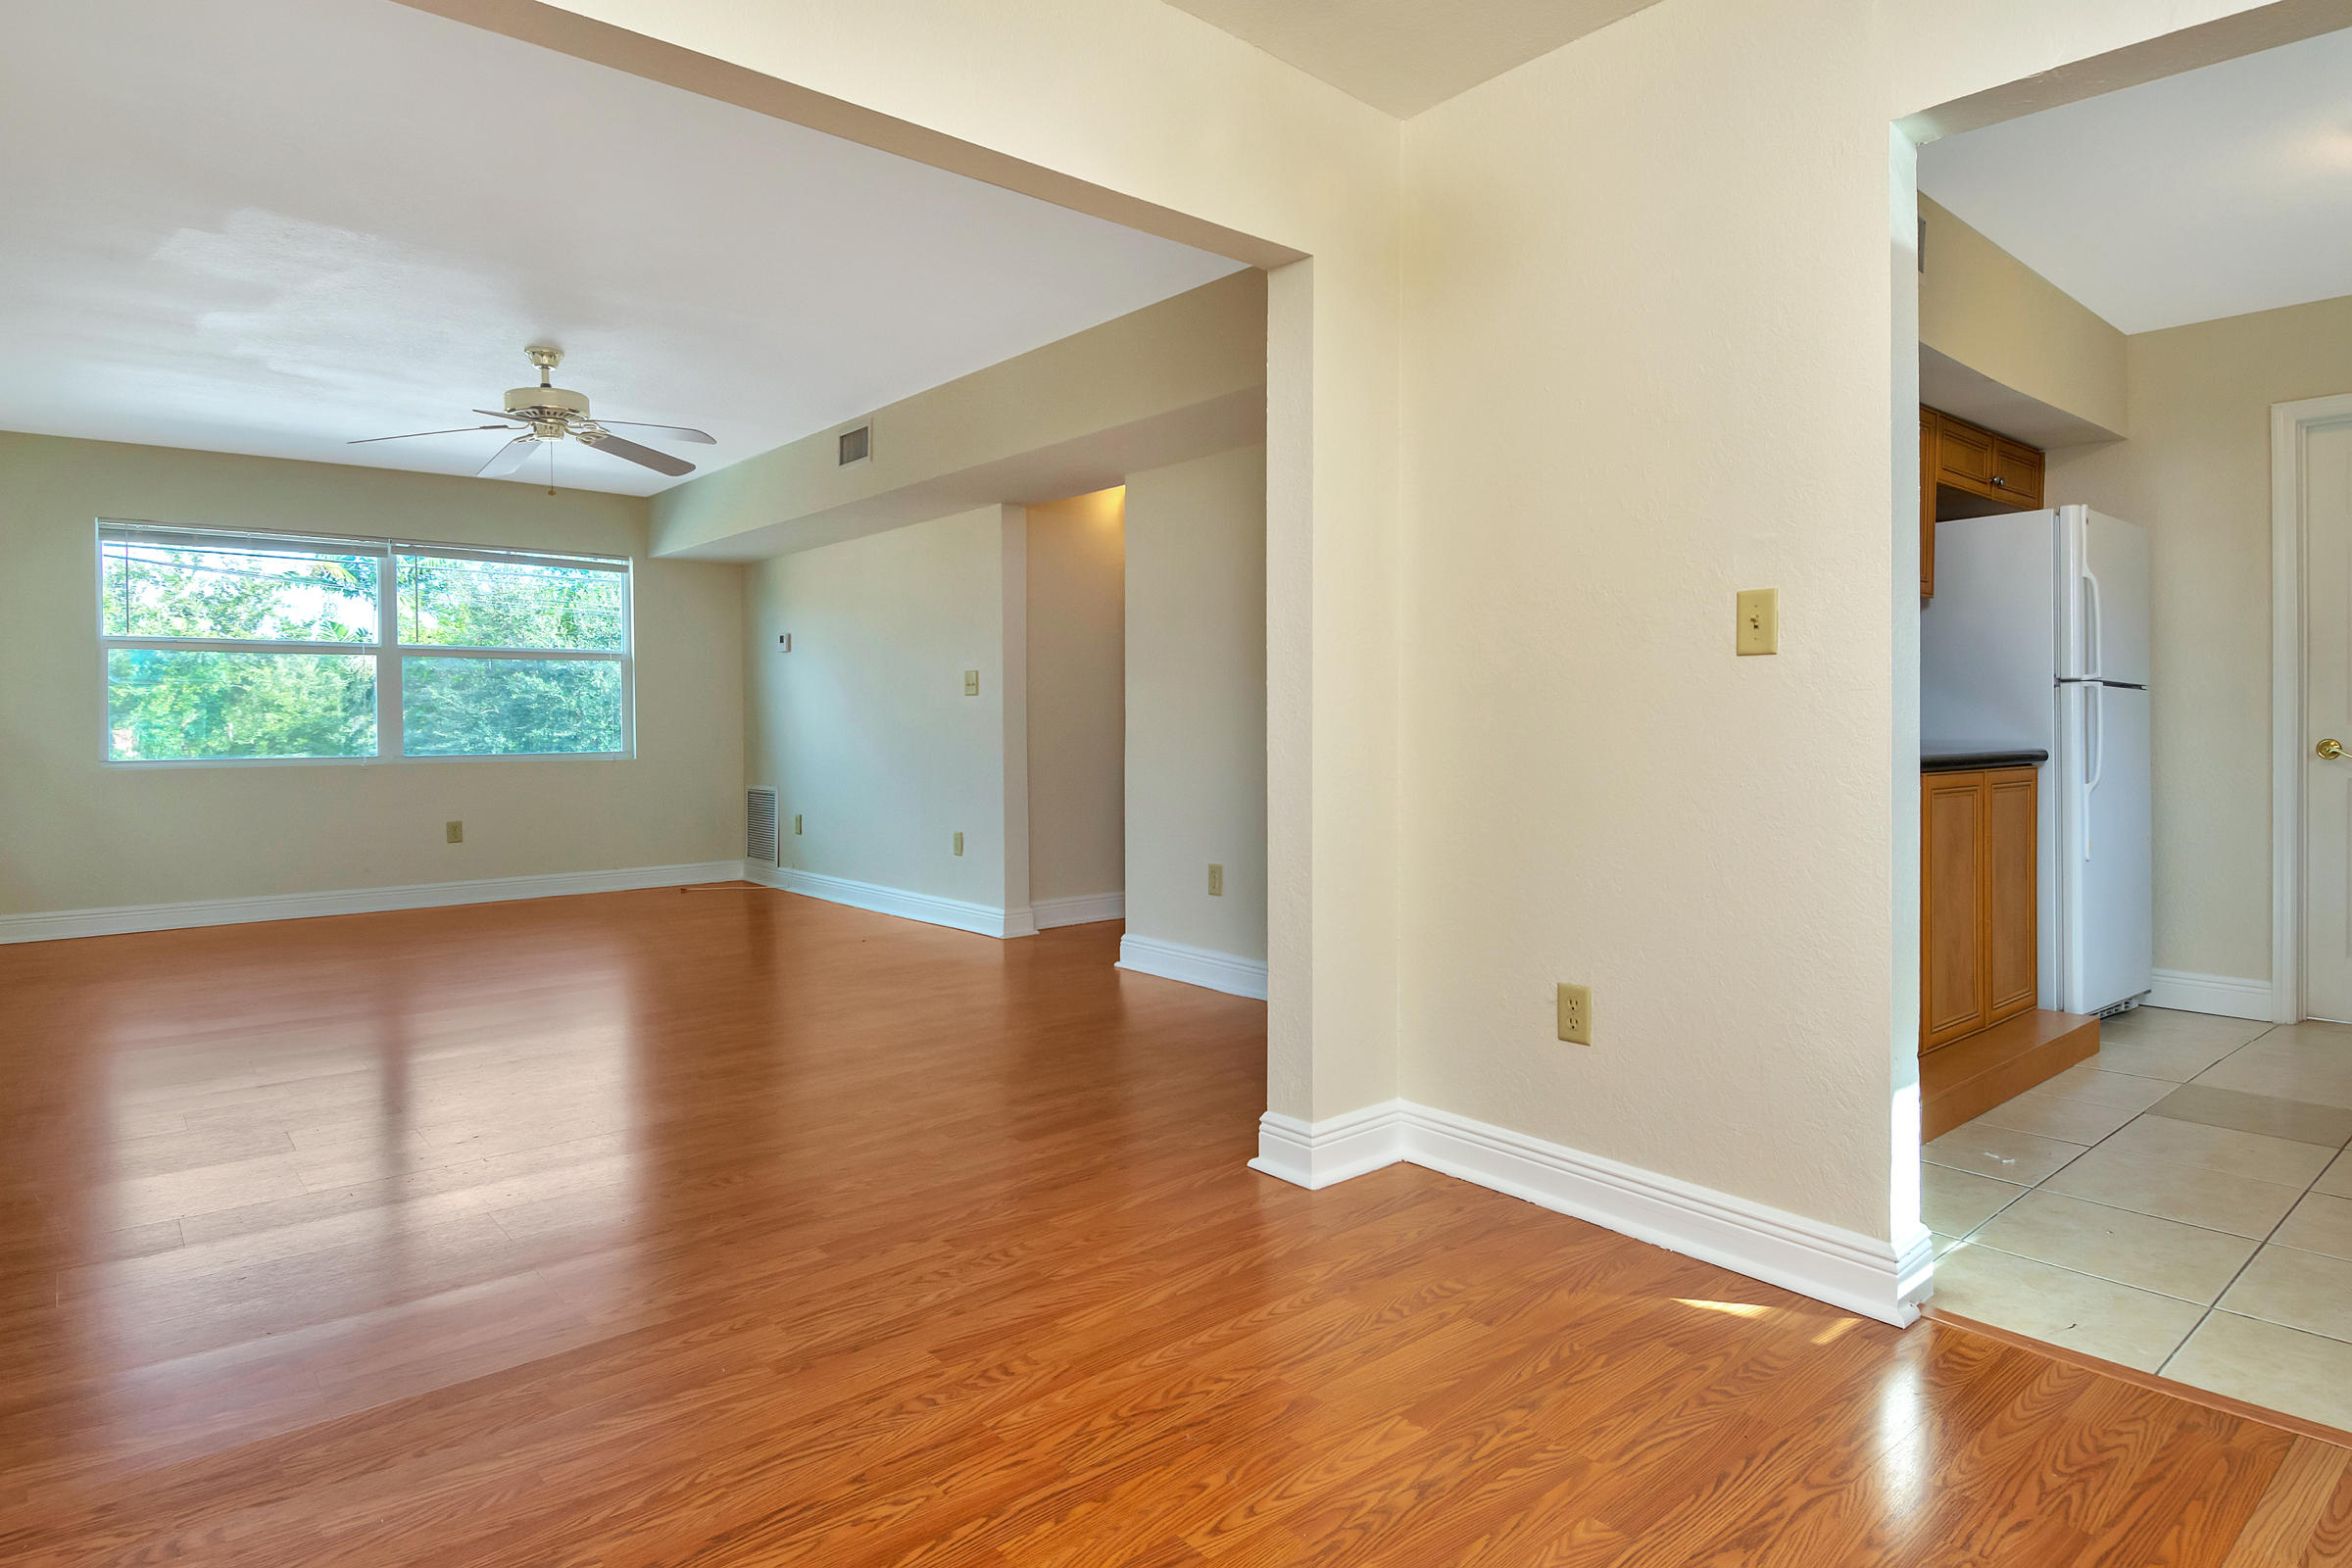 707  6th Avenue 1101,  FL 33460 is listed for sale as MLS Listing RX-10574418 photo #28